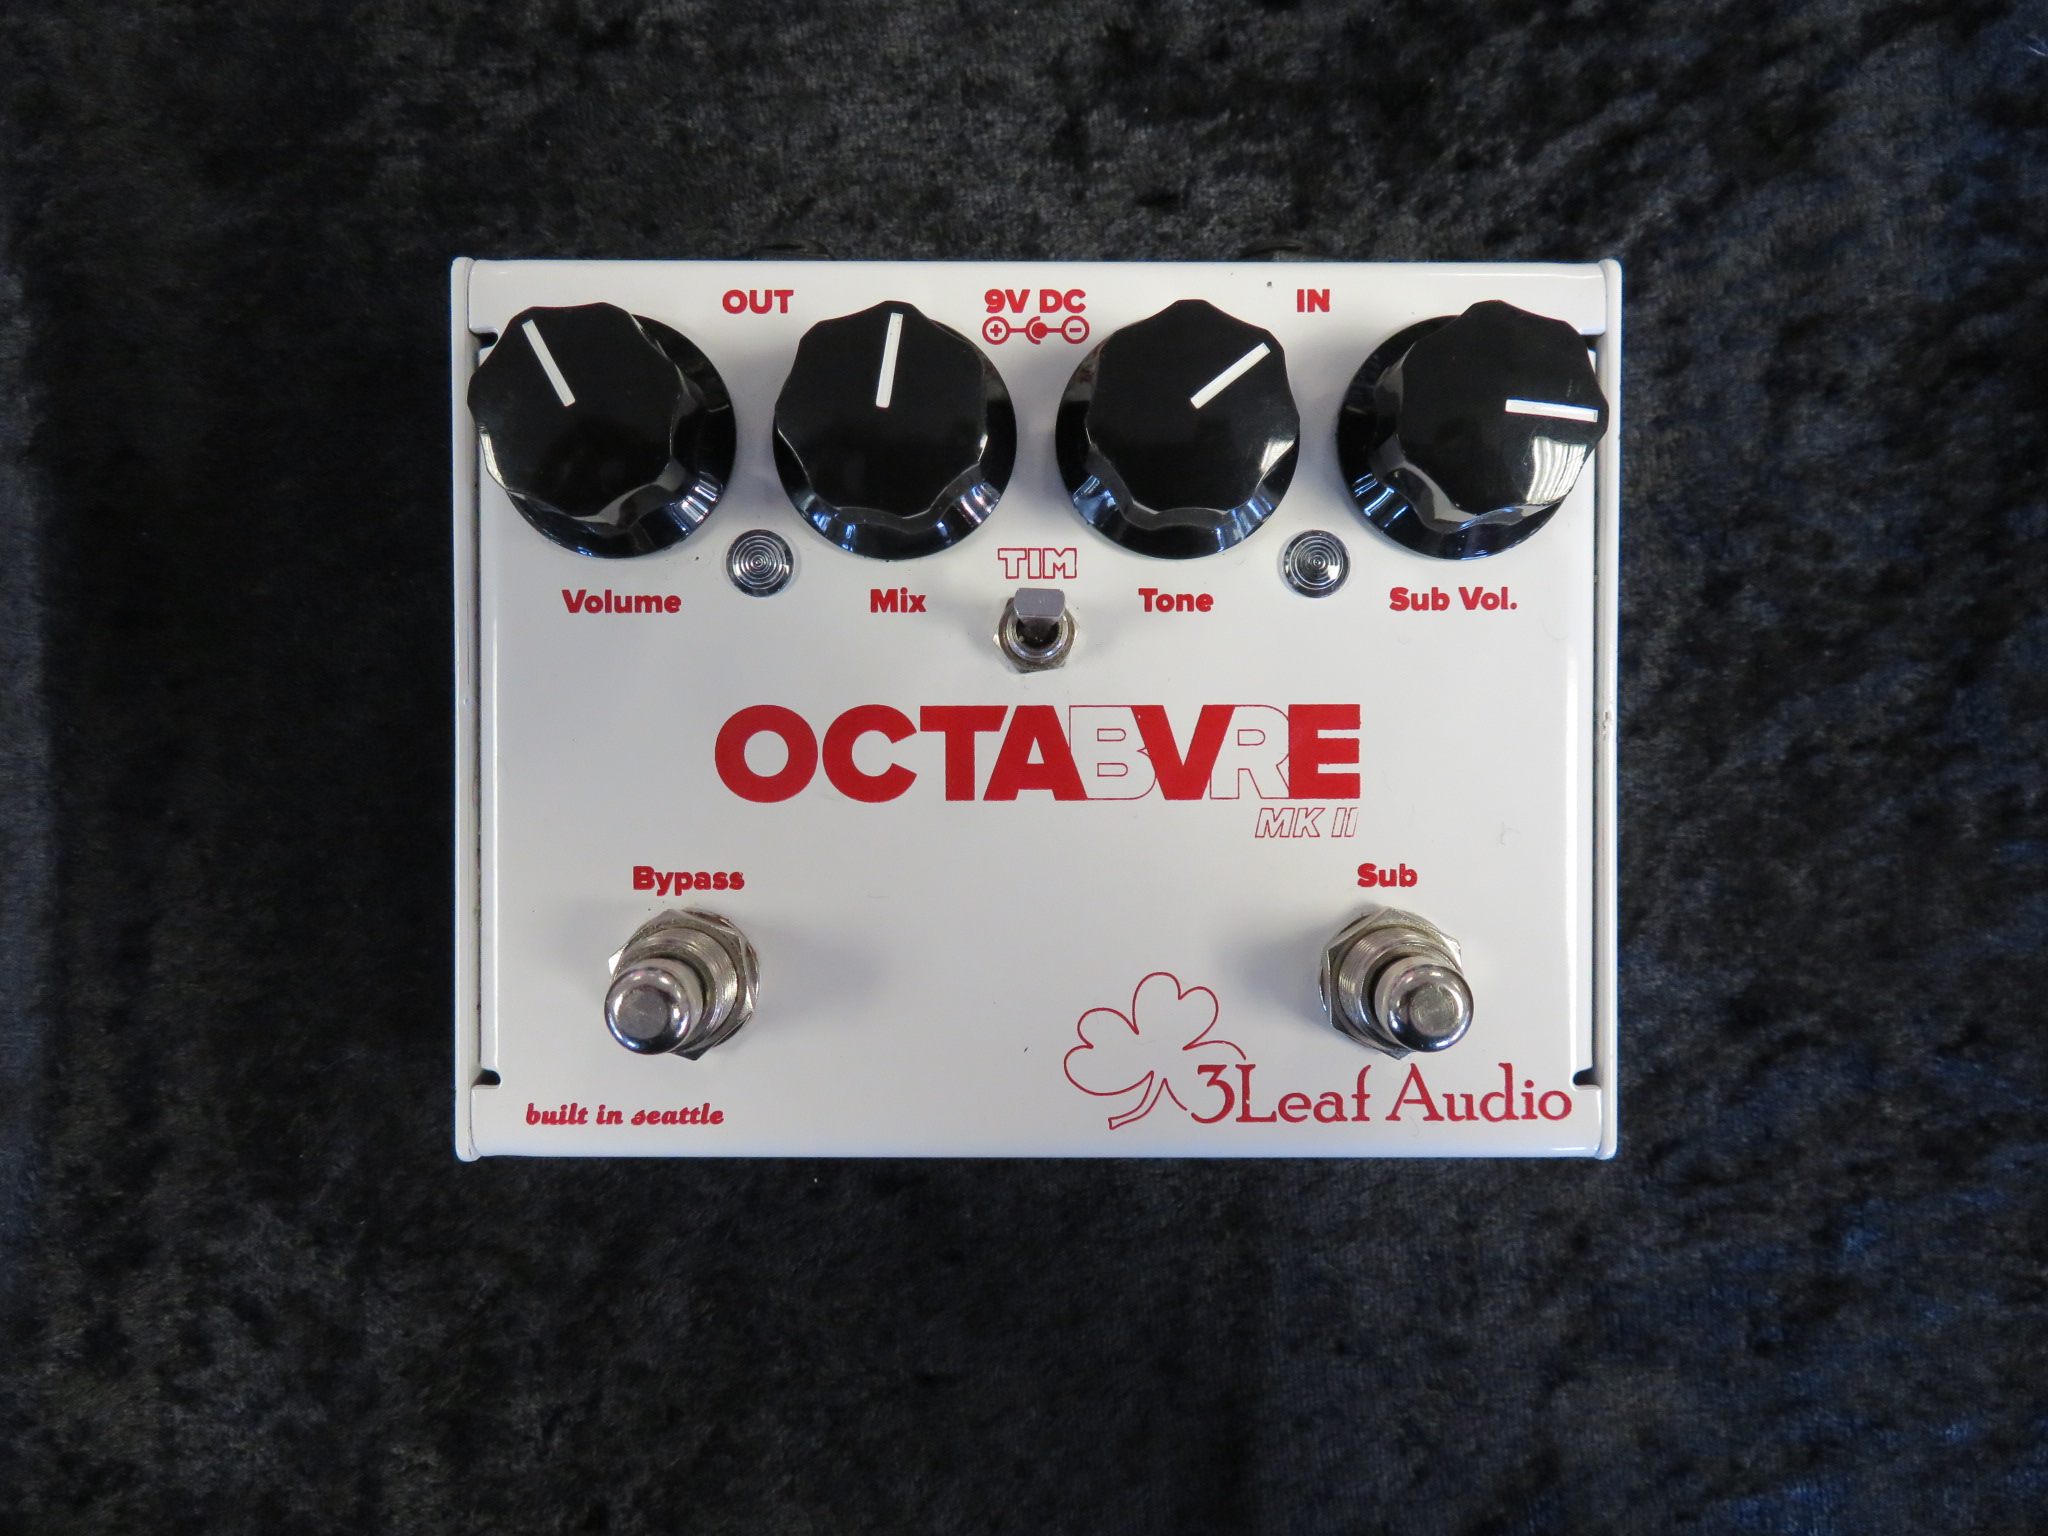 3 Leaf Audio - Octabvre MKII Dual Mode Octaver Pedal